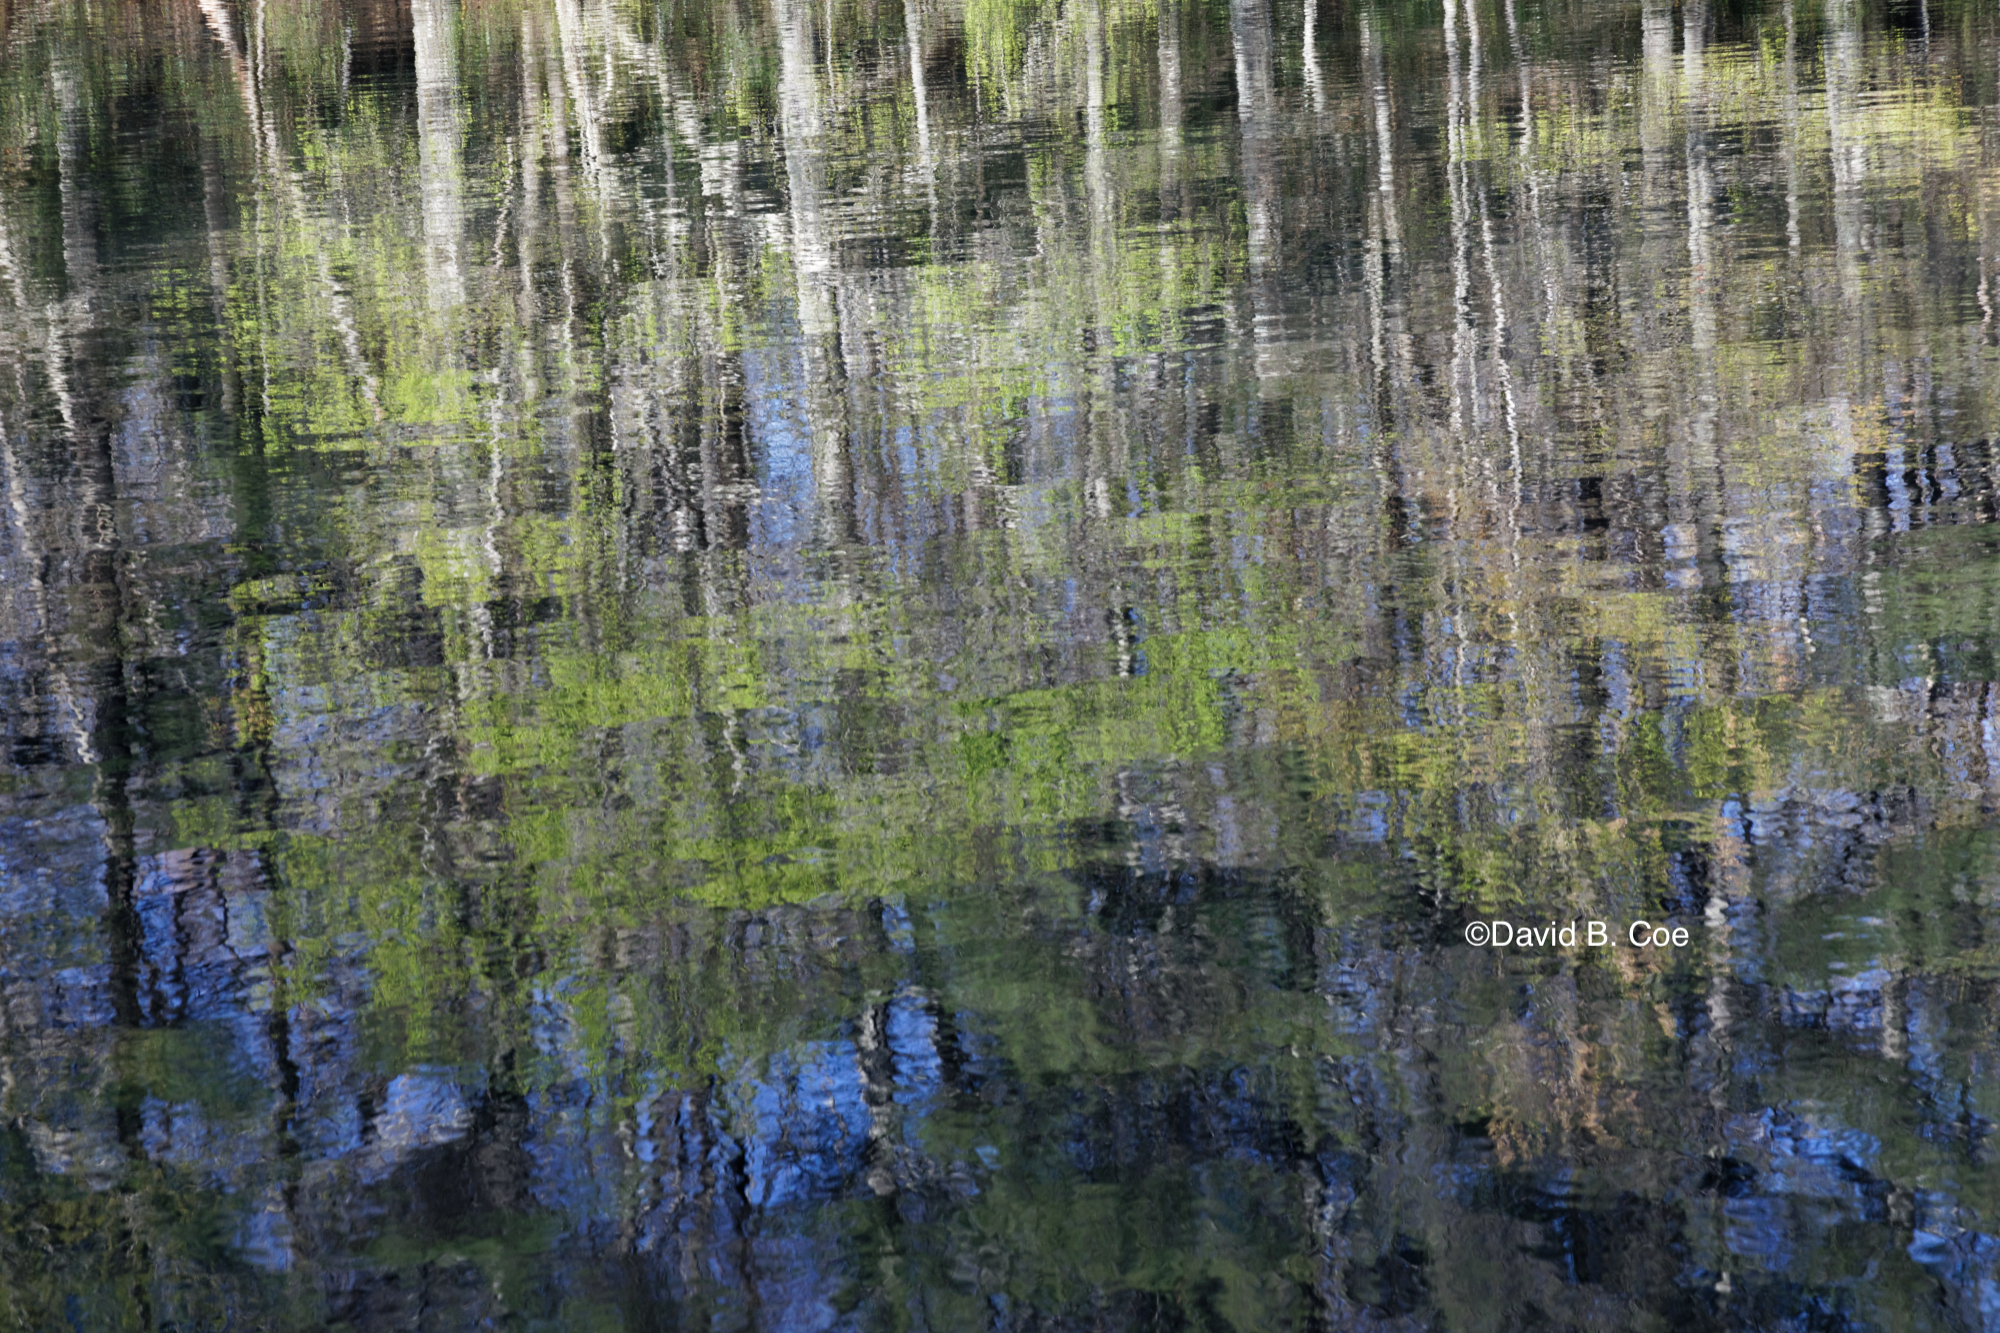 Lake Reflections, Spring, by David B. Coe